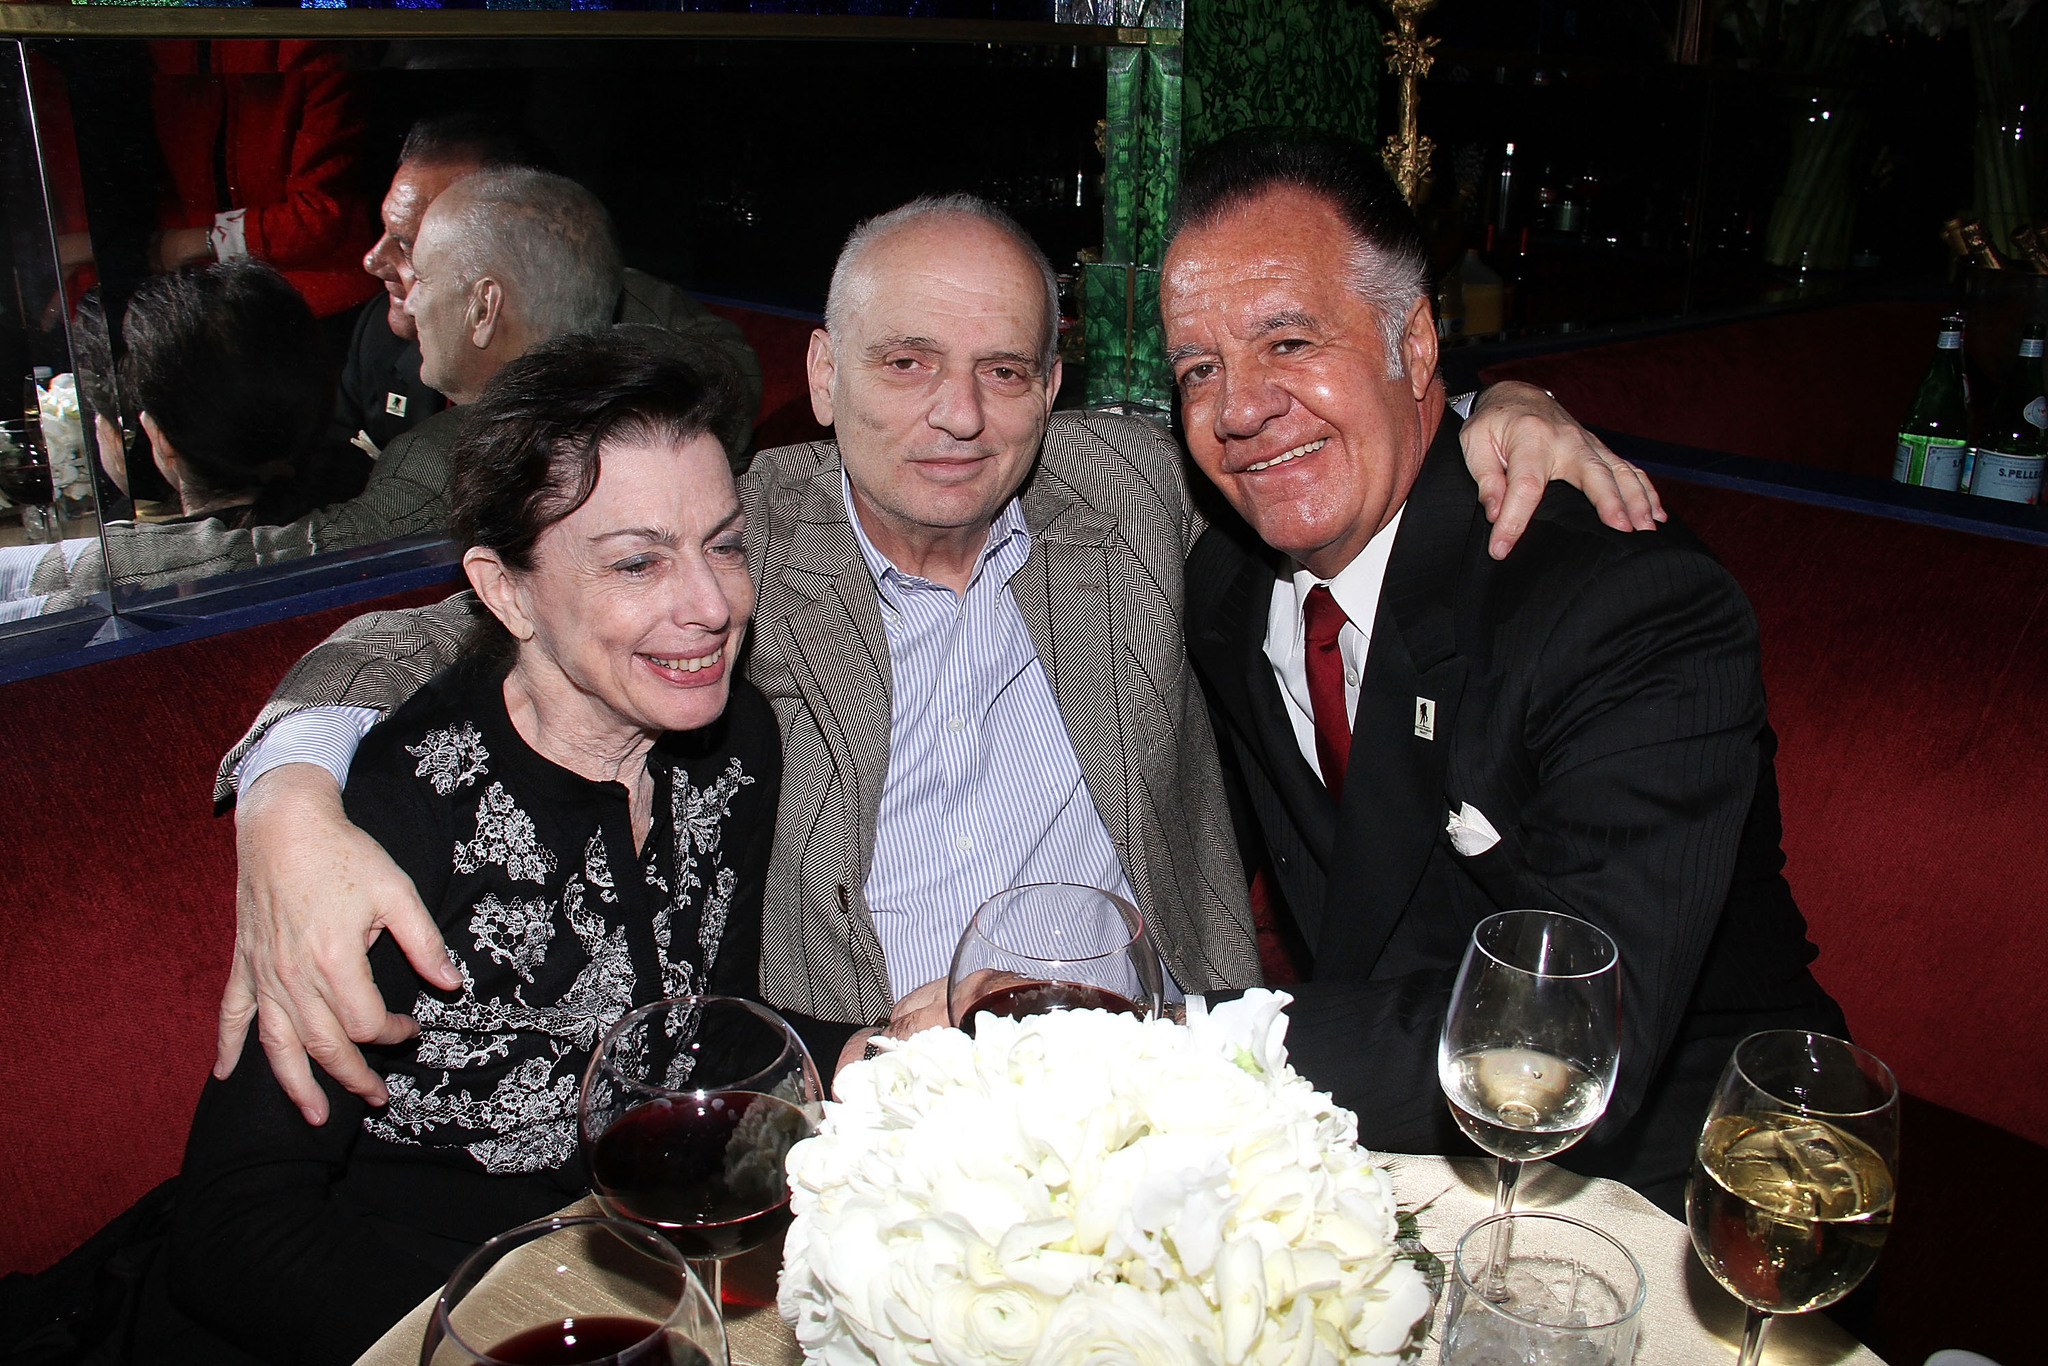 David Chase and Tony Sirico at an event for Lilyhammer (2012)